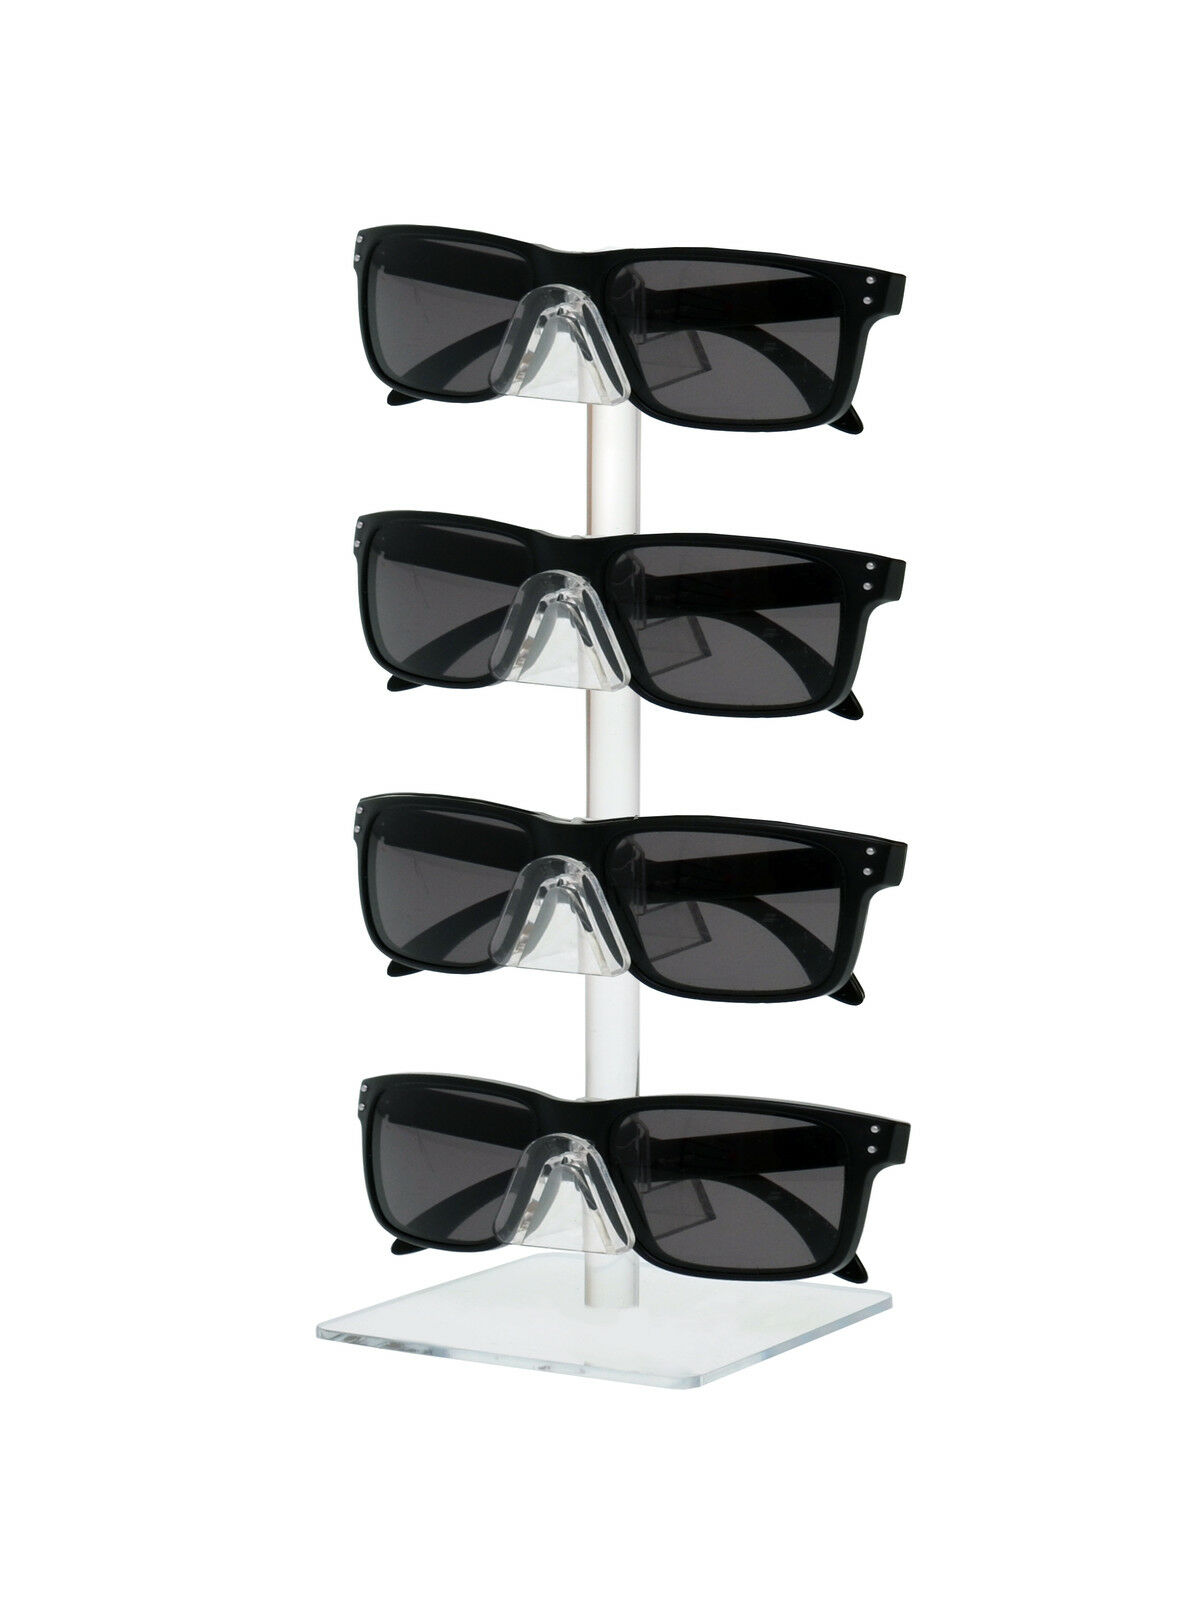 Lot of 6 Clear 4 Tier Sunglasses Eyeglasses Counter Square display stand.